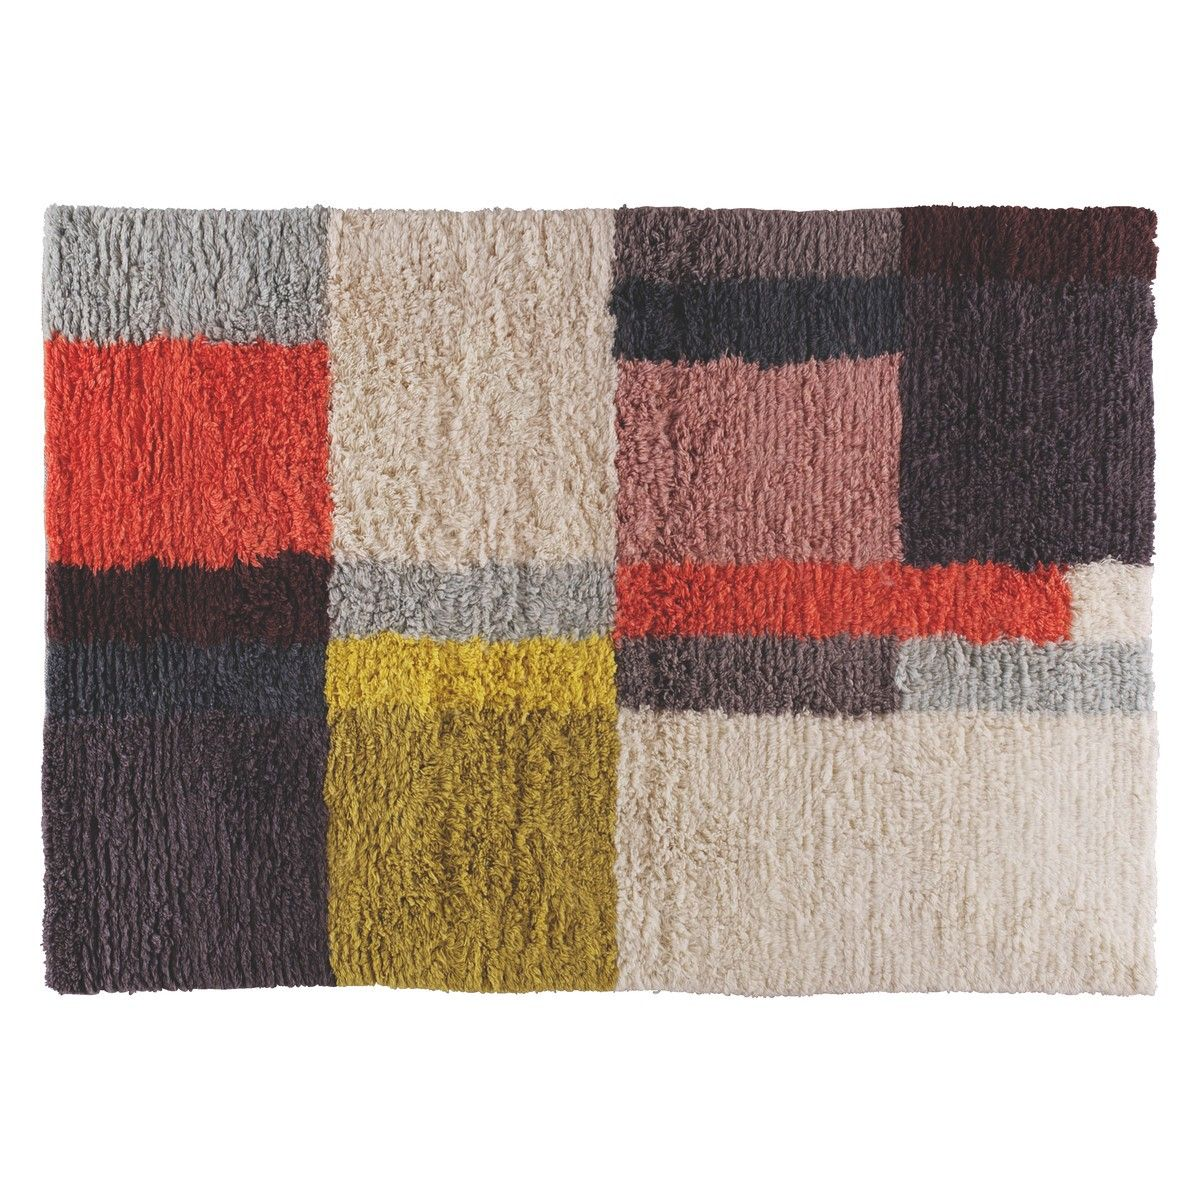 Vegas Large Multi Coloured Patterned Rug 170 X 240cm Rugs Rugs On Carpet Carpet Sale